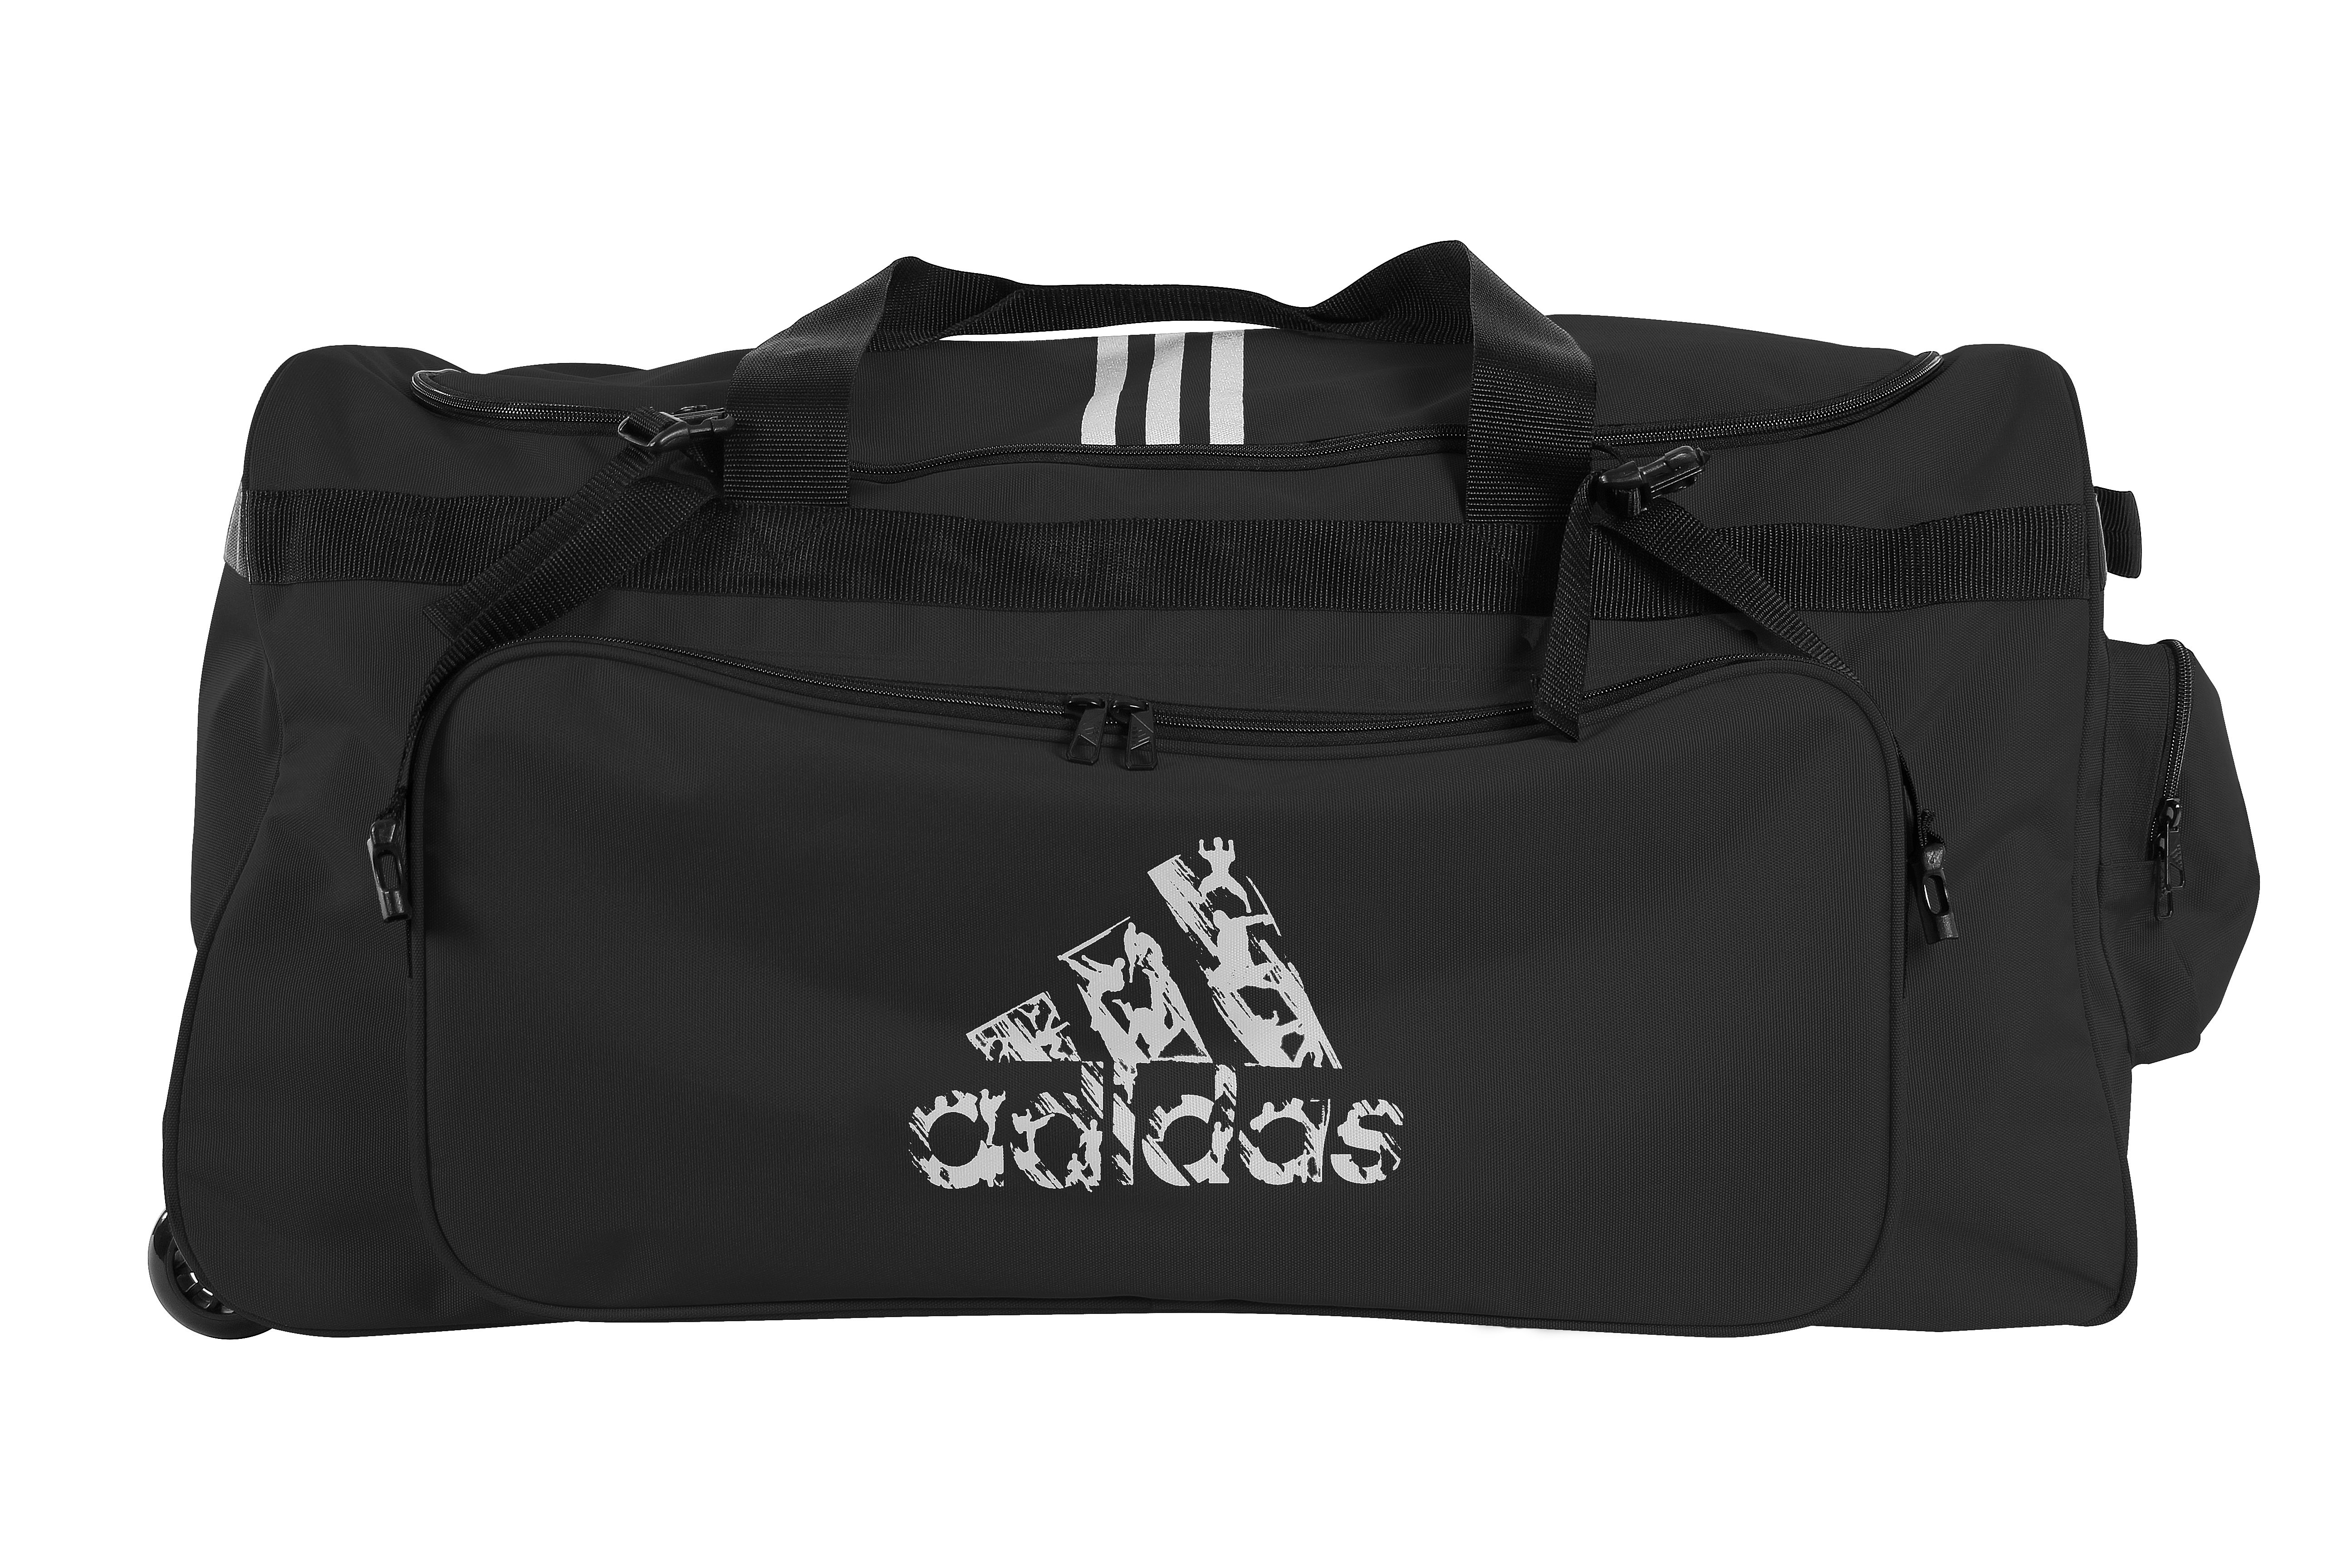 Adidas Roulettes Sport Sport À Sac Sac m0vN8nw